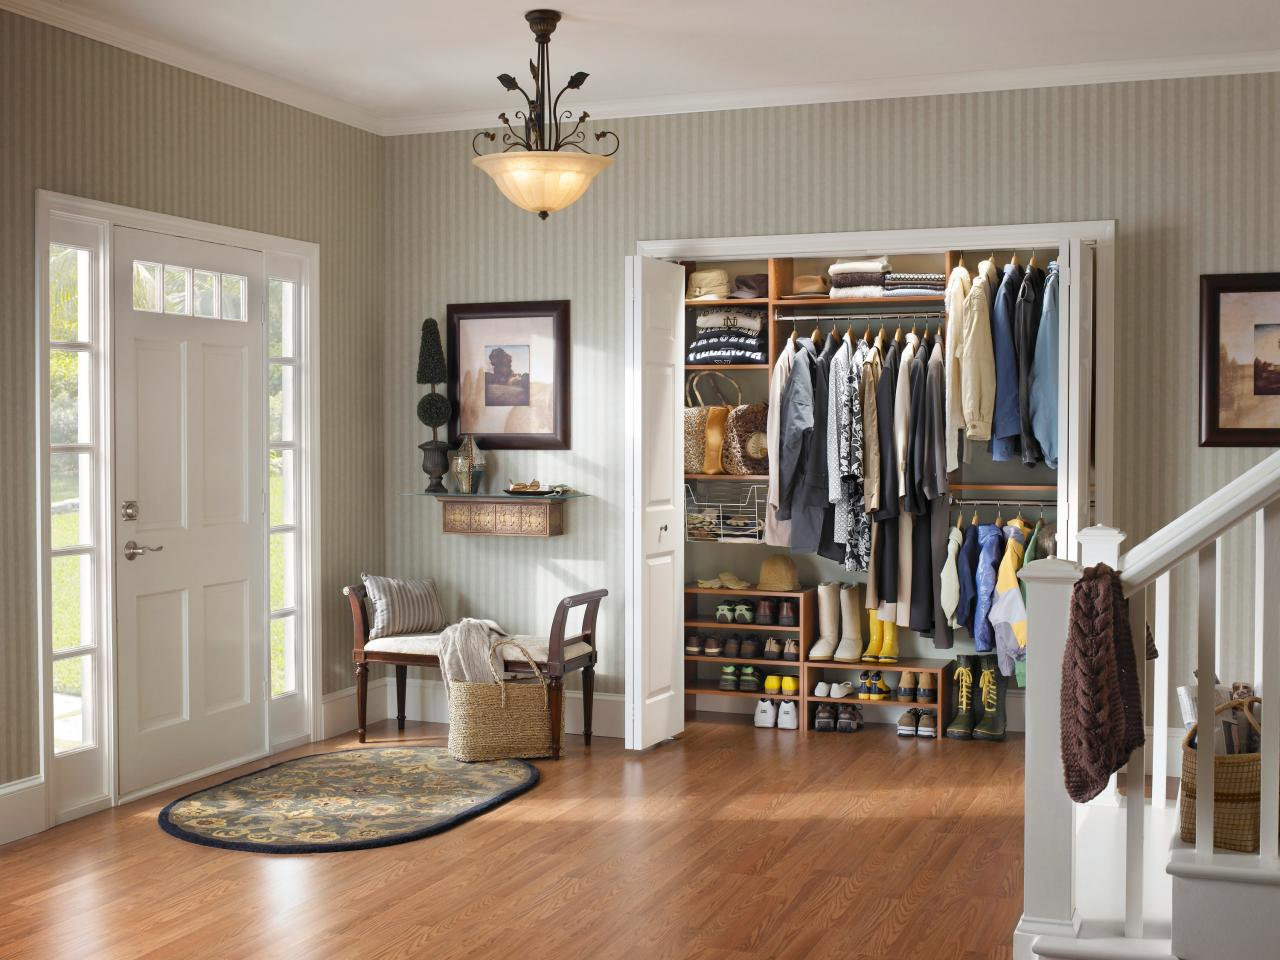 Entry Foyer Closet : The tips to apply closet organizer ideas midcityeast